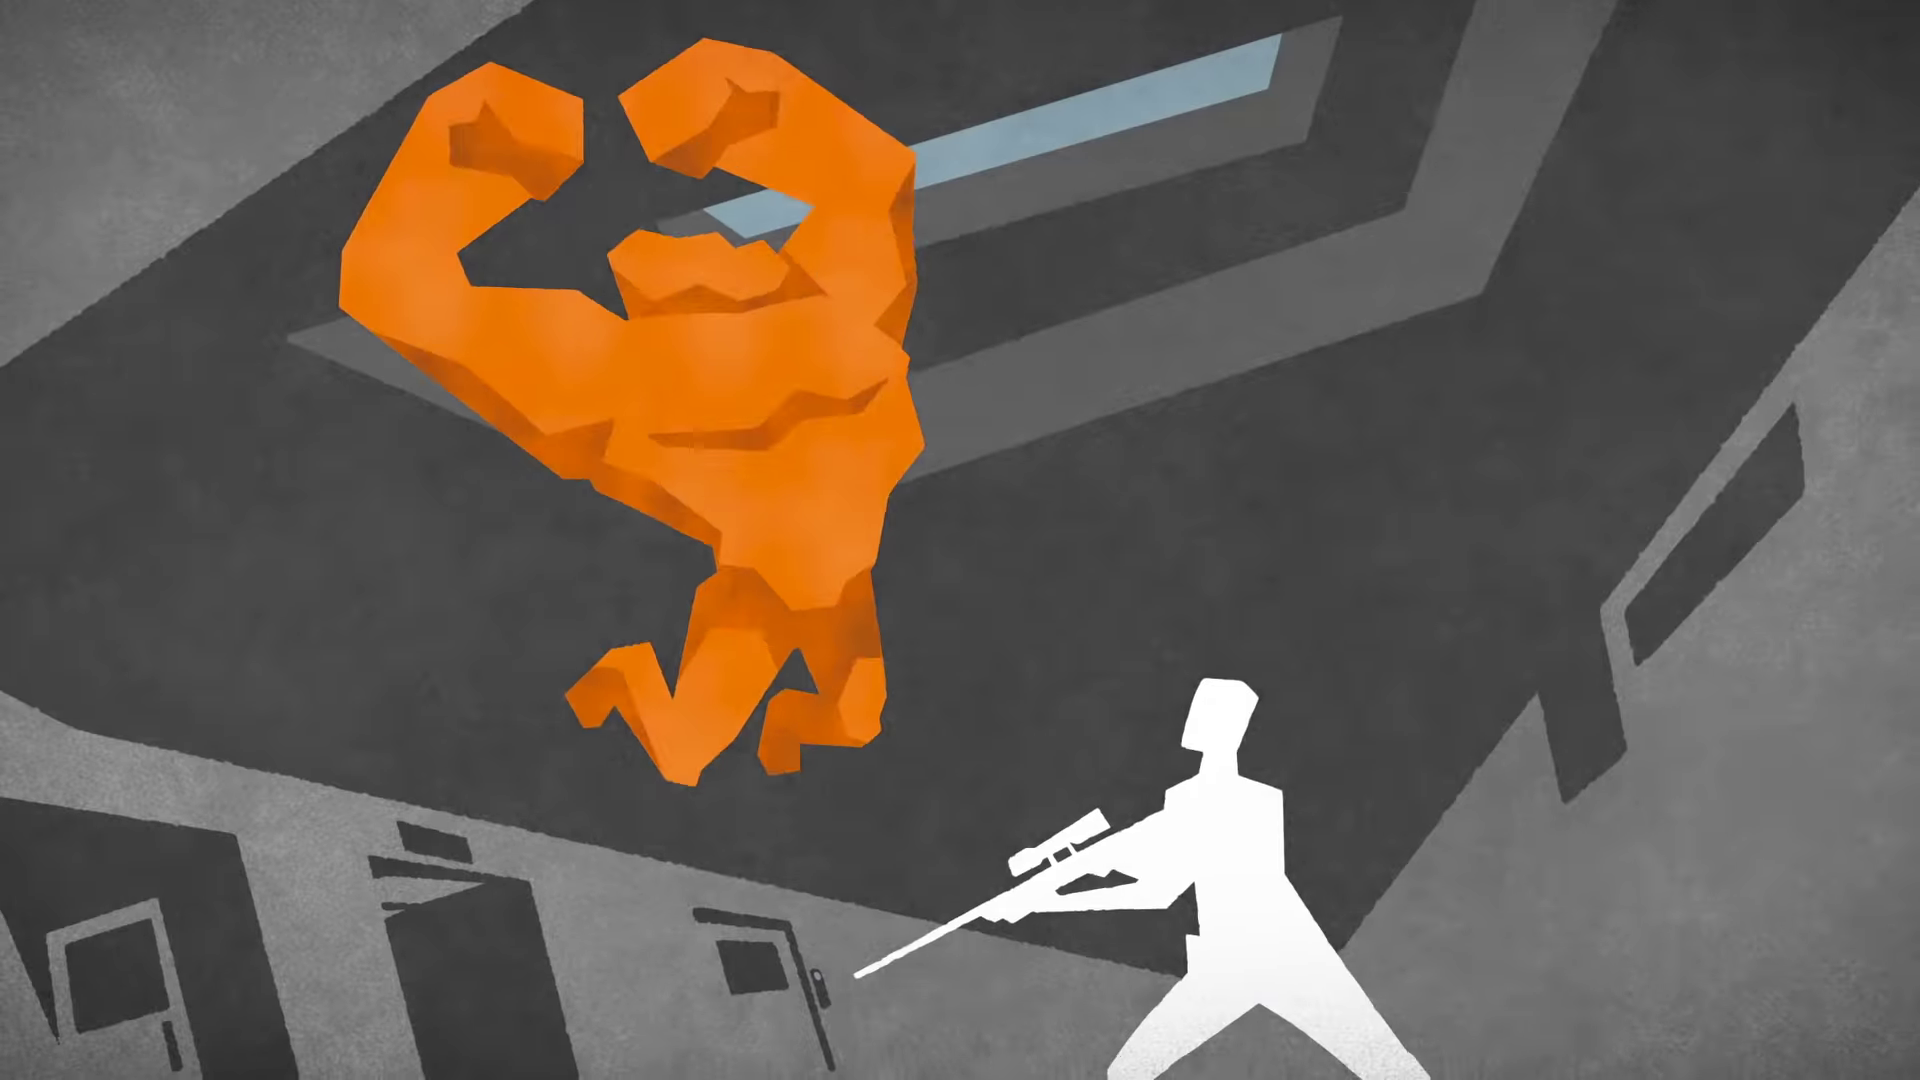 Ape Out - ape leaping, about to attack a man holding a sniper rifle